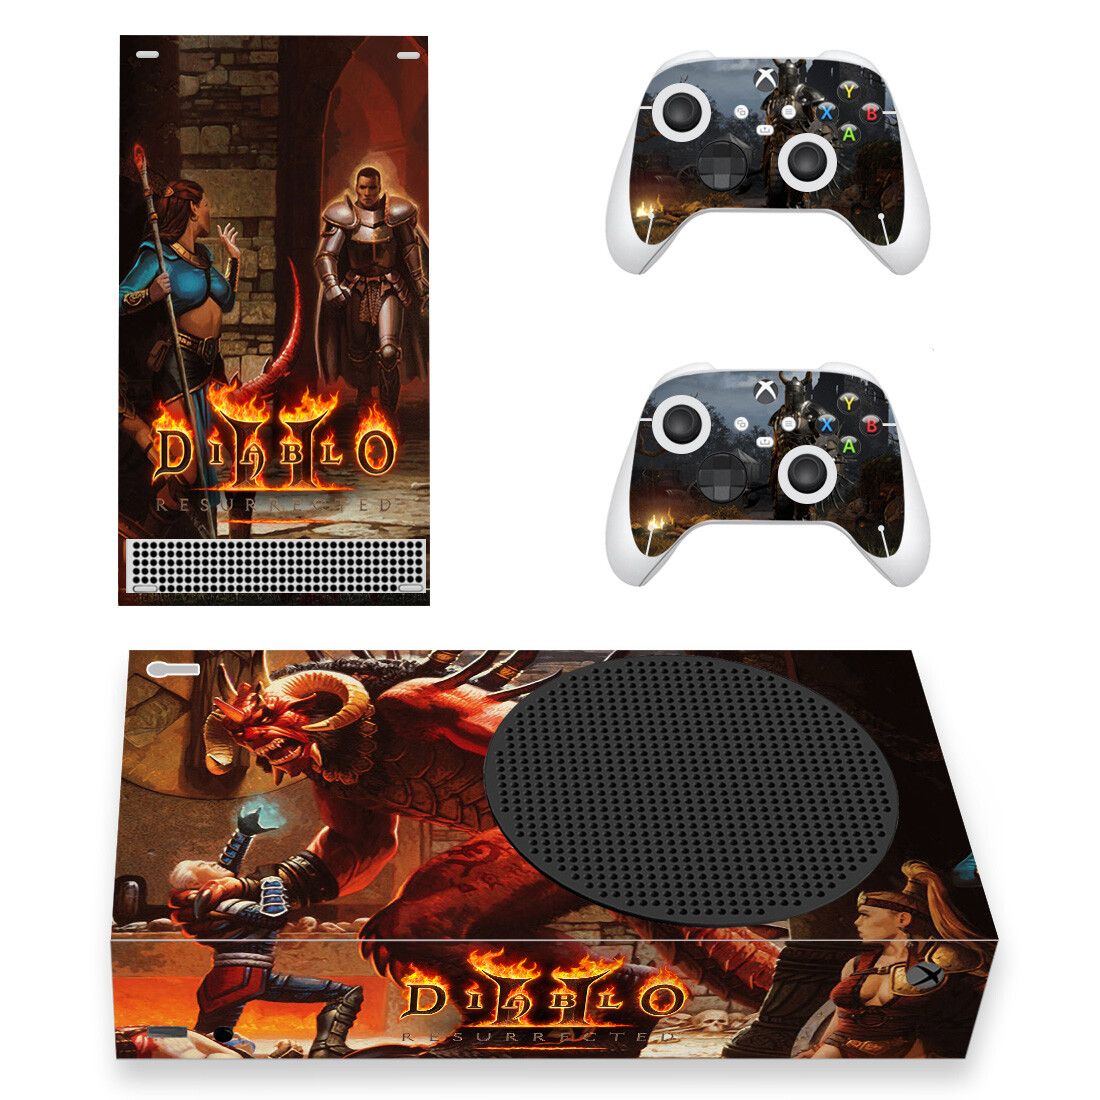 Diablo 2 Skin Sticker For Xbox Series S And Controllers